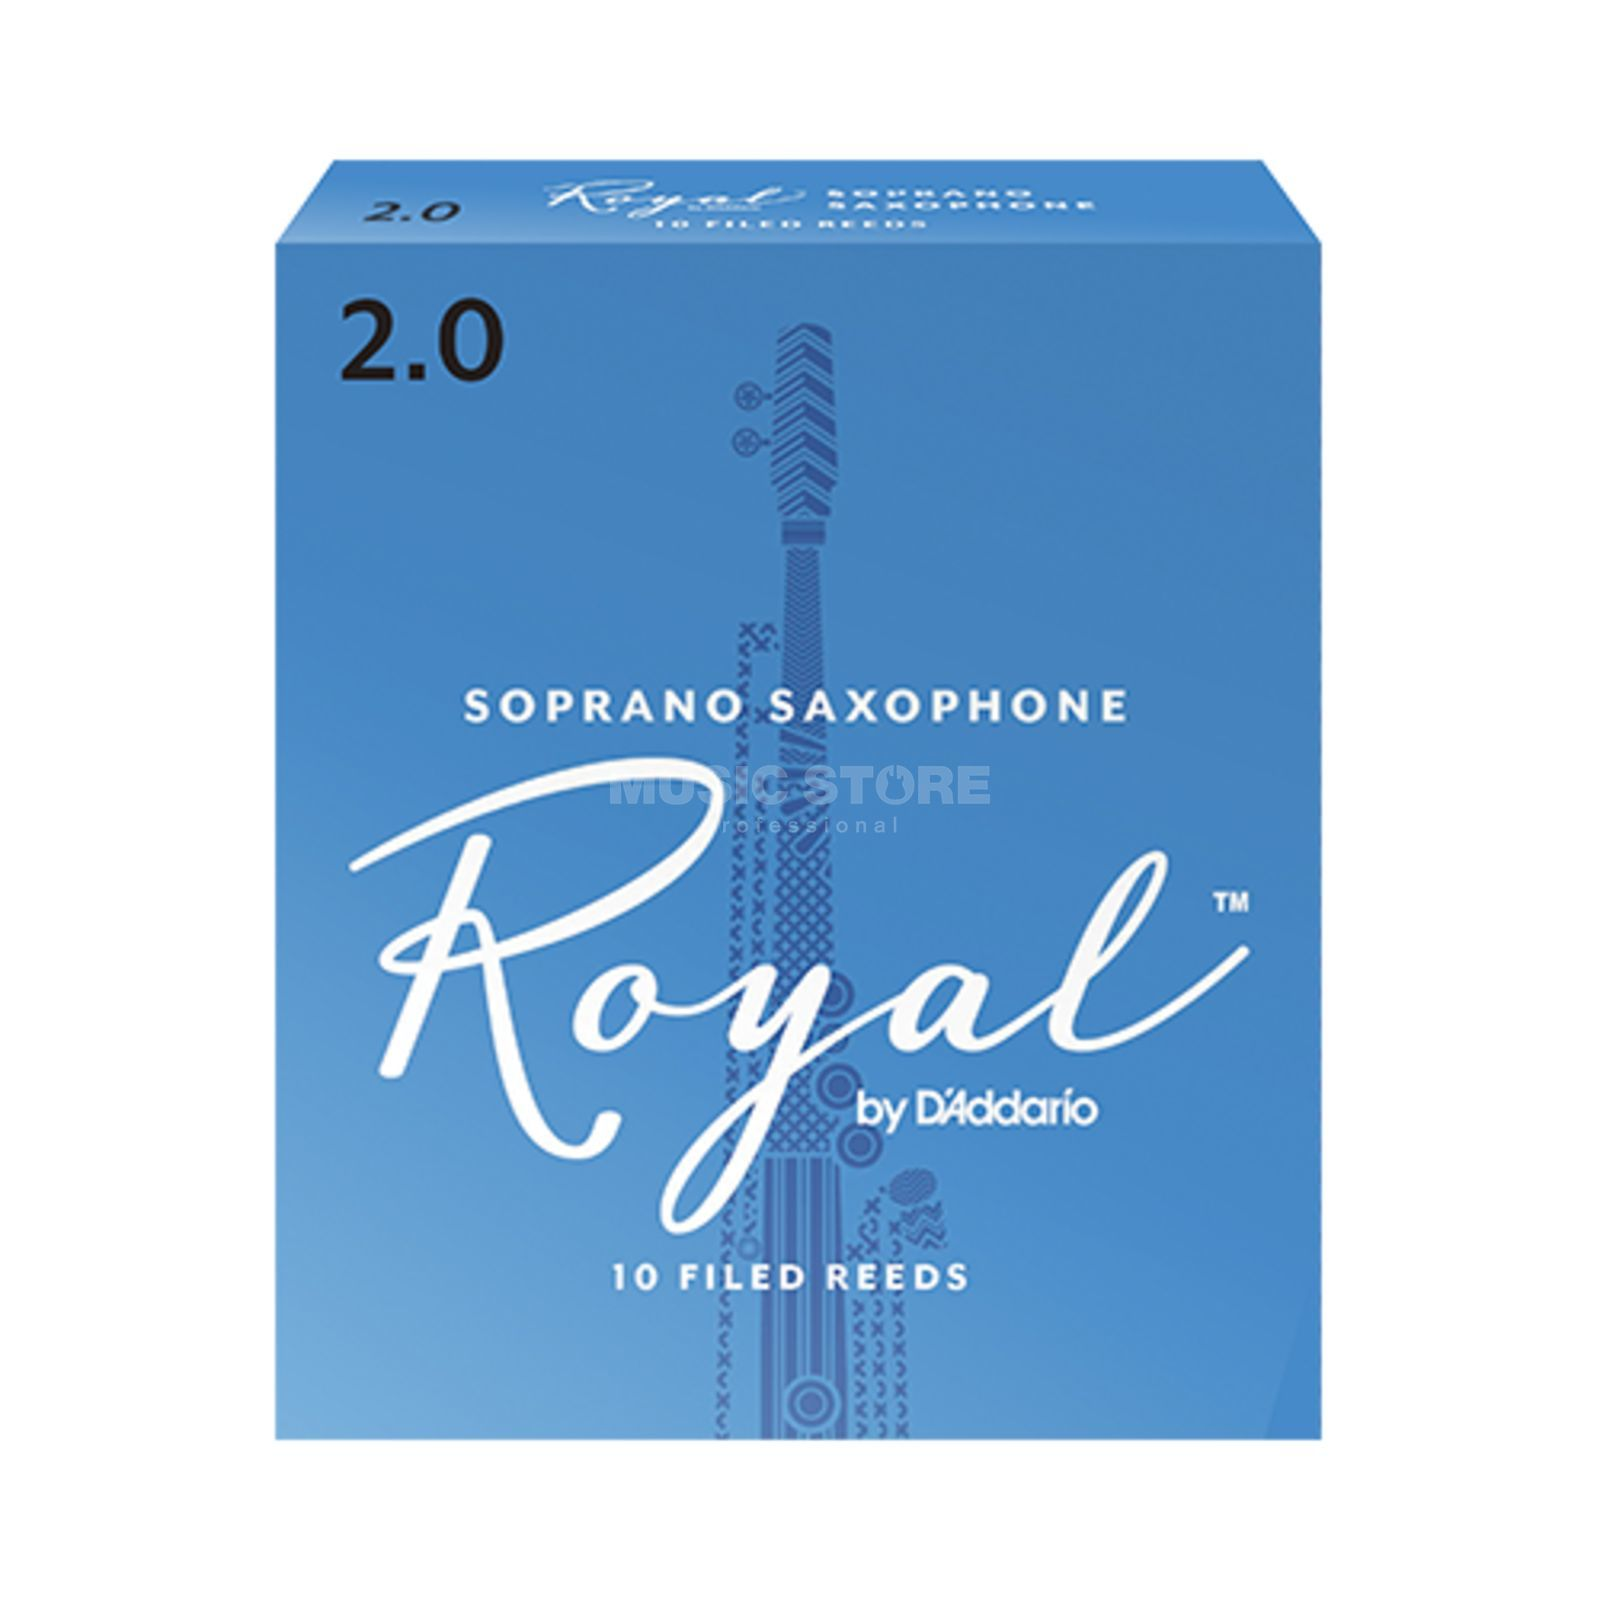 D'Addario Soprano Saxophone Reeds 2 Box of 10 Product Image